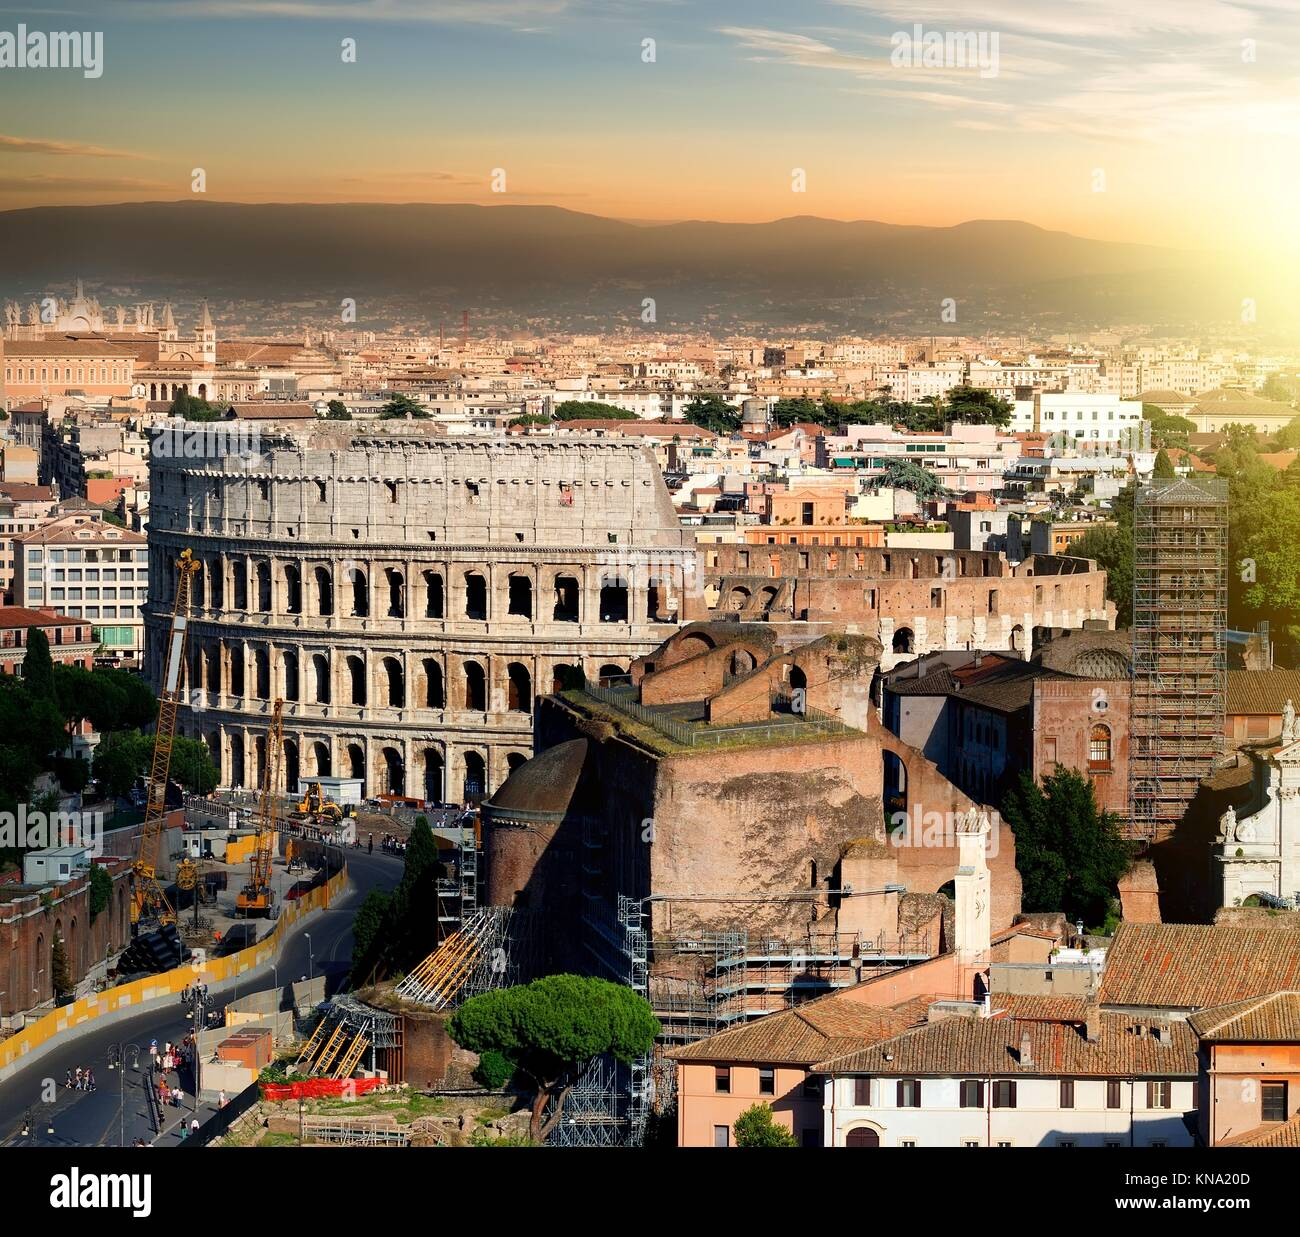 Great ancient colosseum in Rome at sunset, Italy. - Stock Image